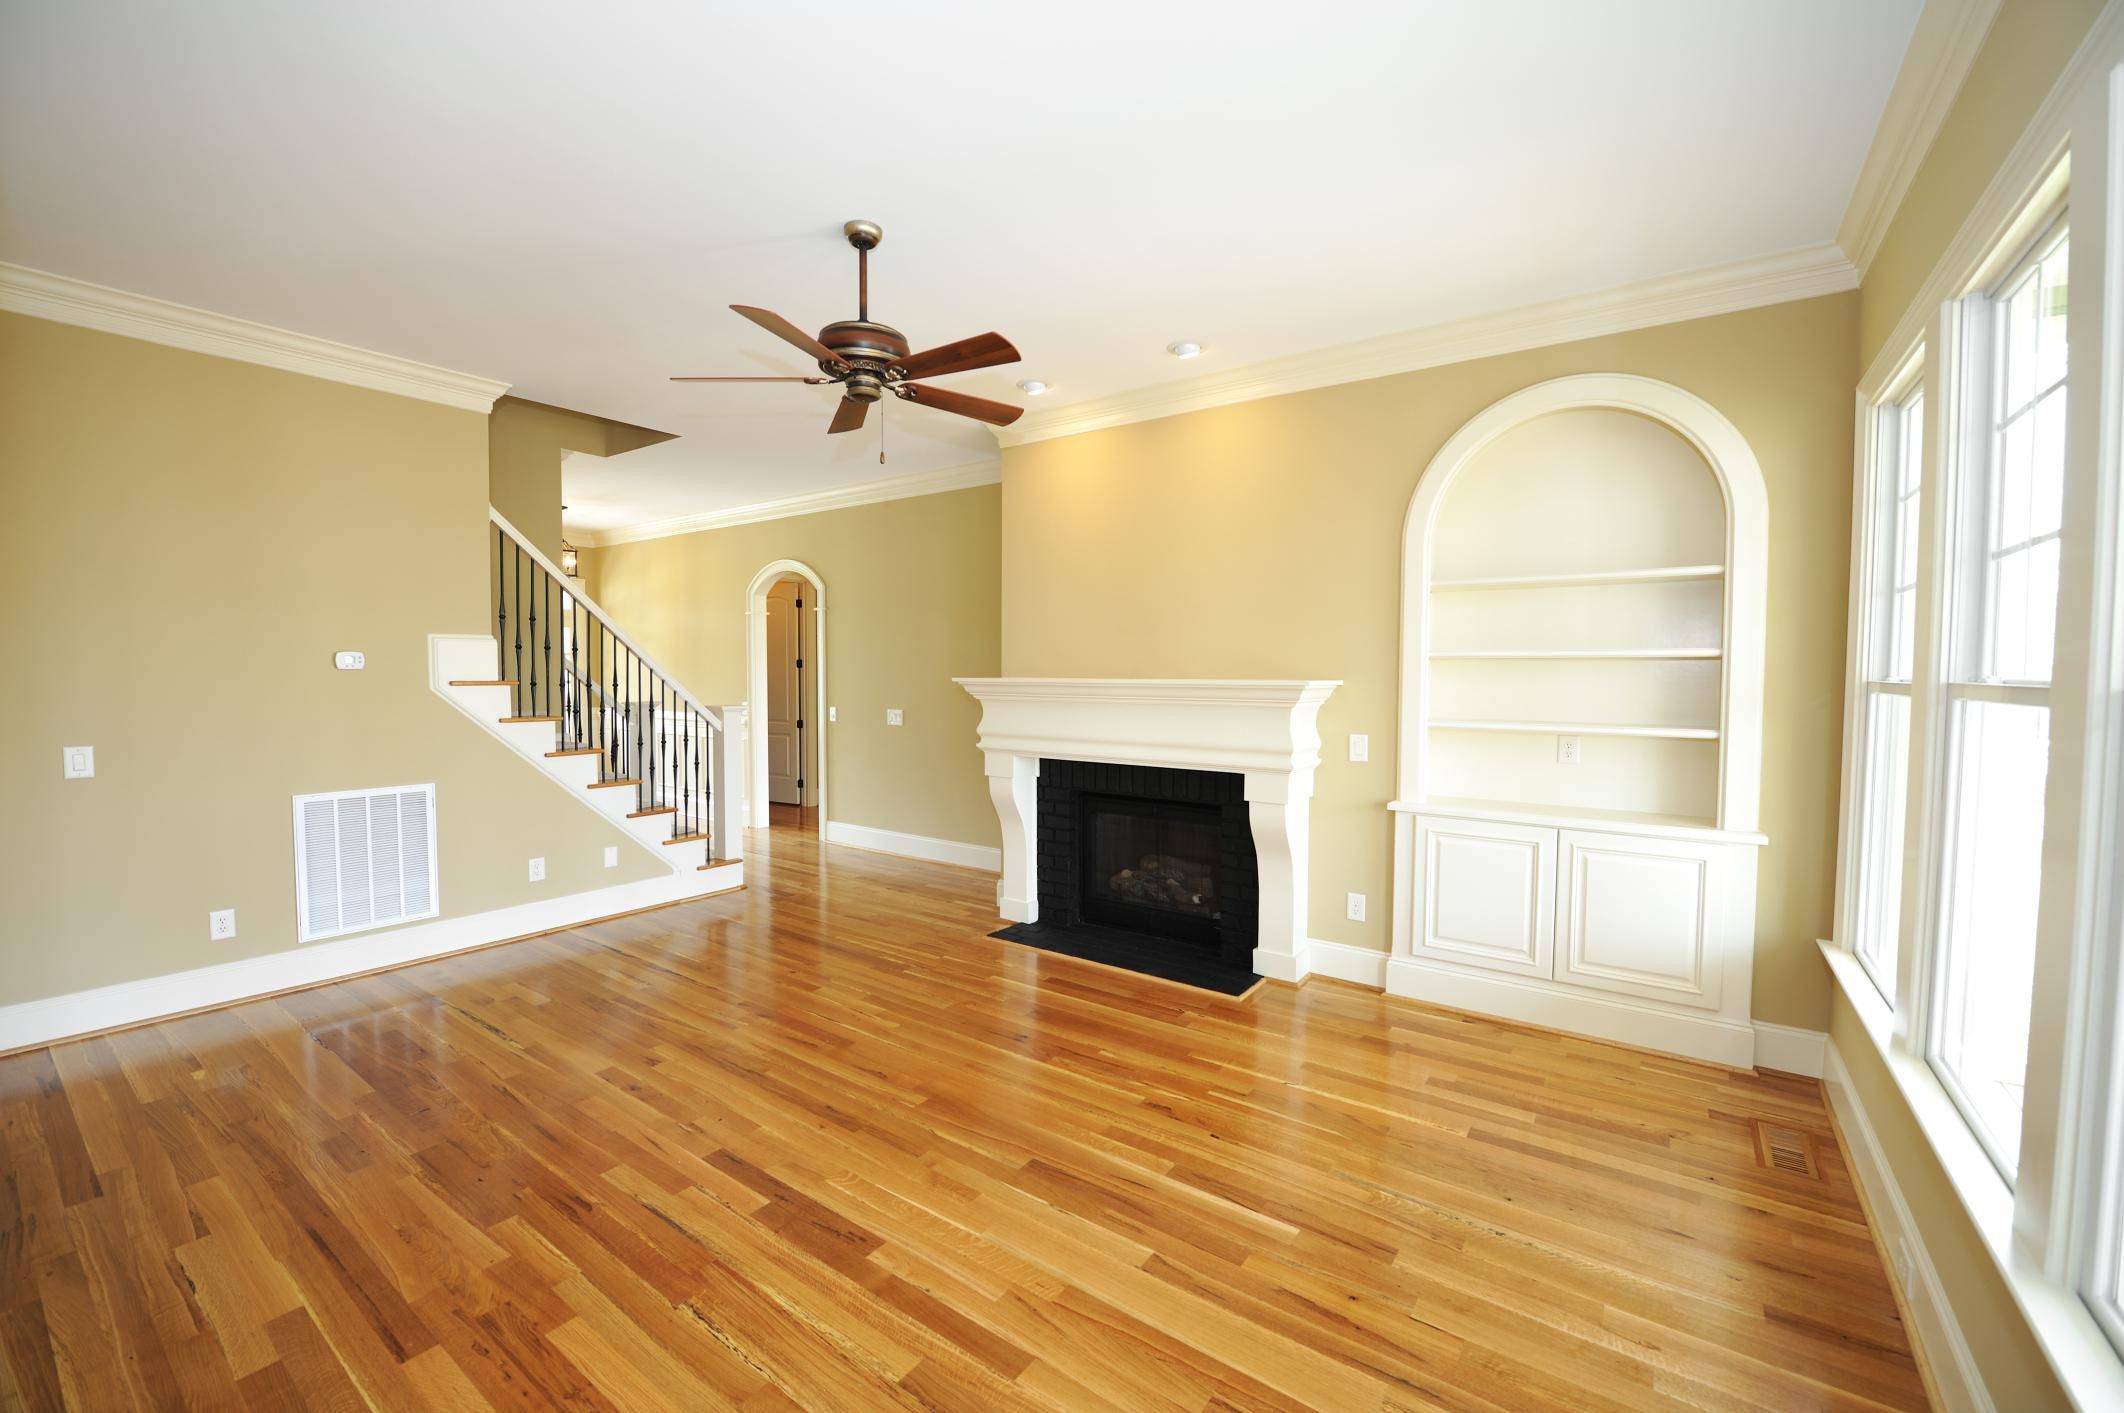 Red Oak Engineered Hardwood Flooring Of solid and Engineered Wood Flooring In 157328869 56a4a2ac5f9b58b7d0d7ef49